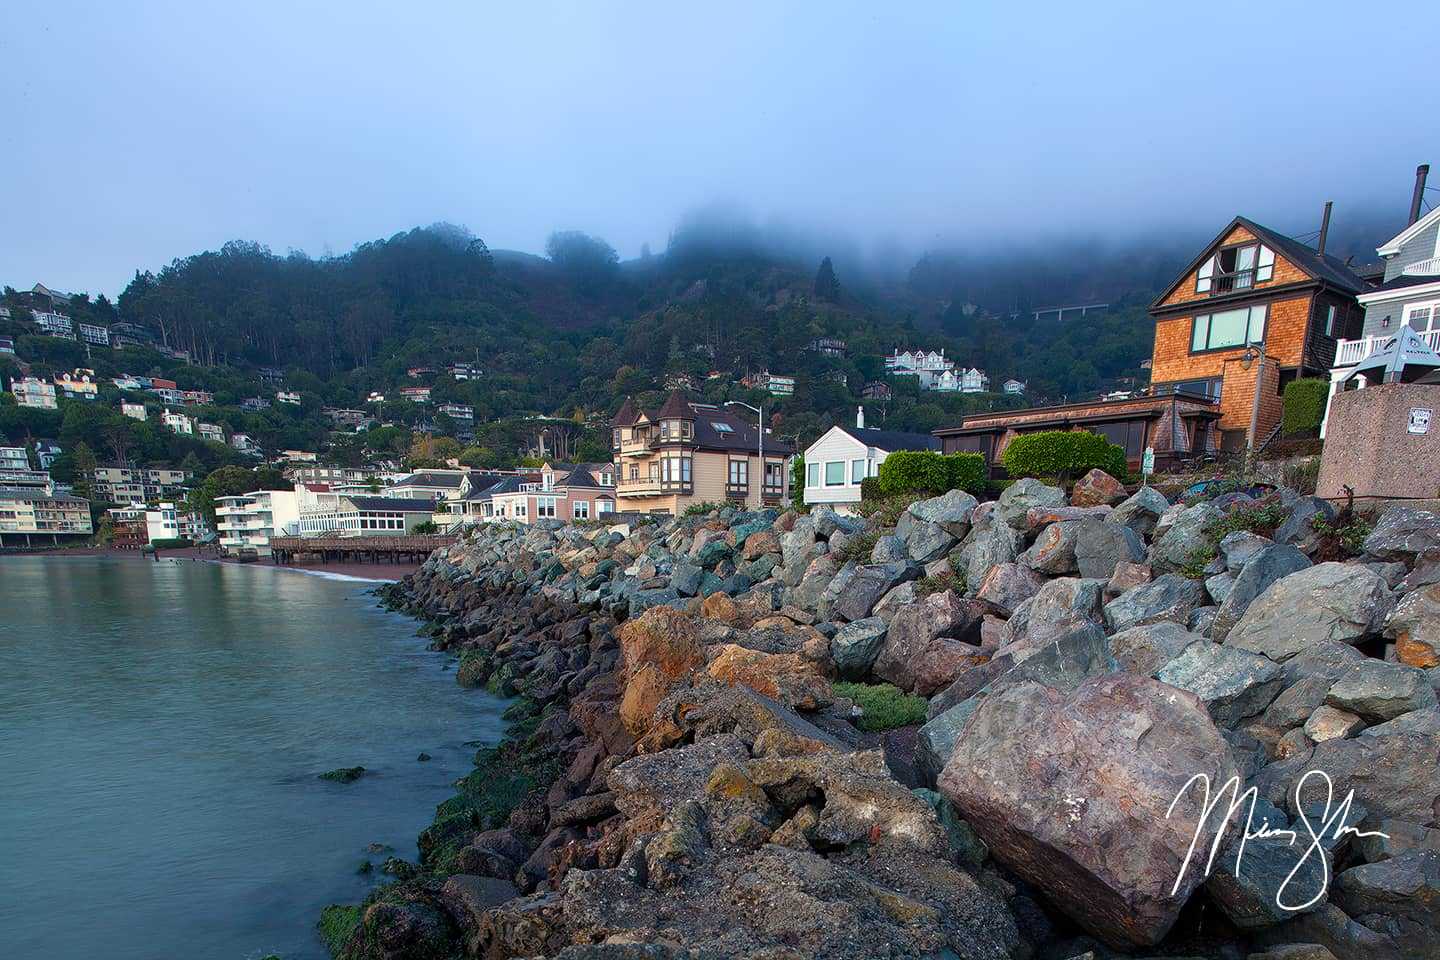 Open edition fine art print of Sausalito Morning from Mickey Shannon Photography. Location: Sausalito, California